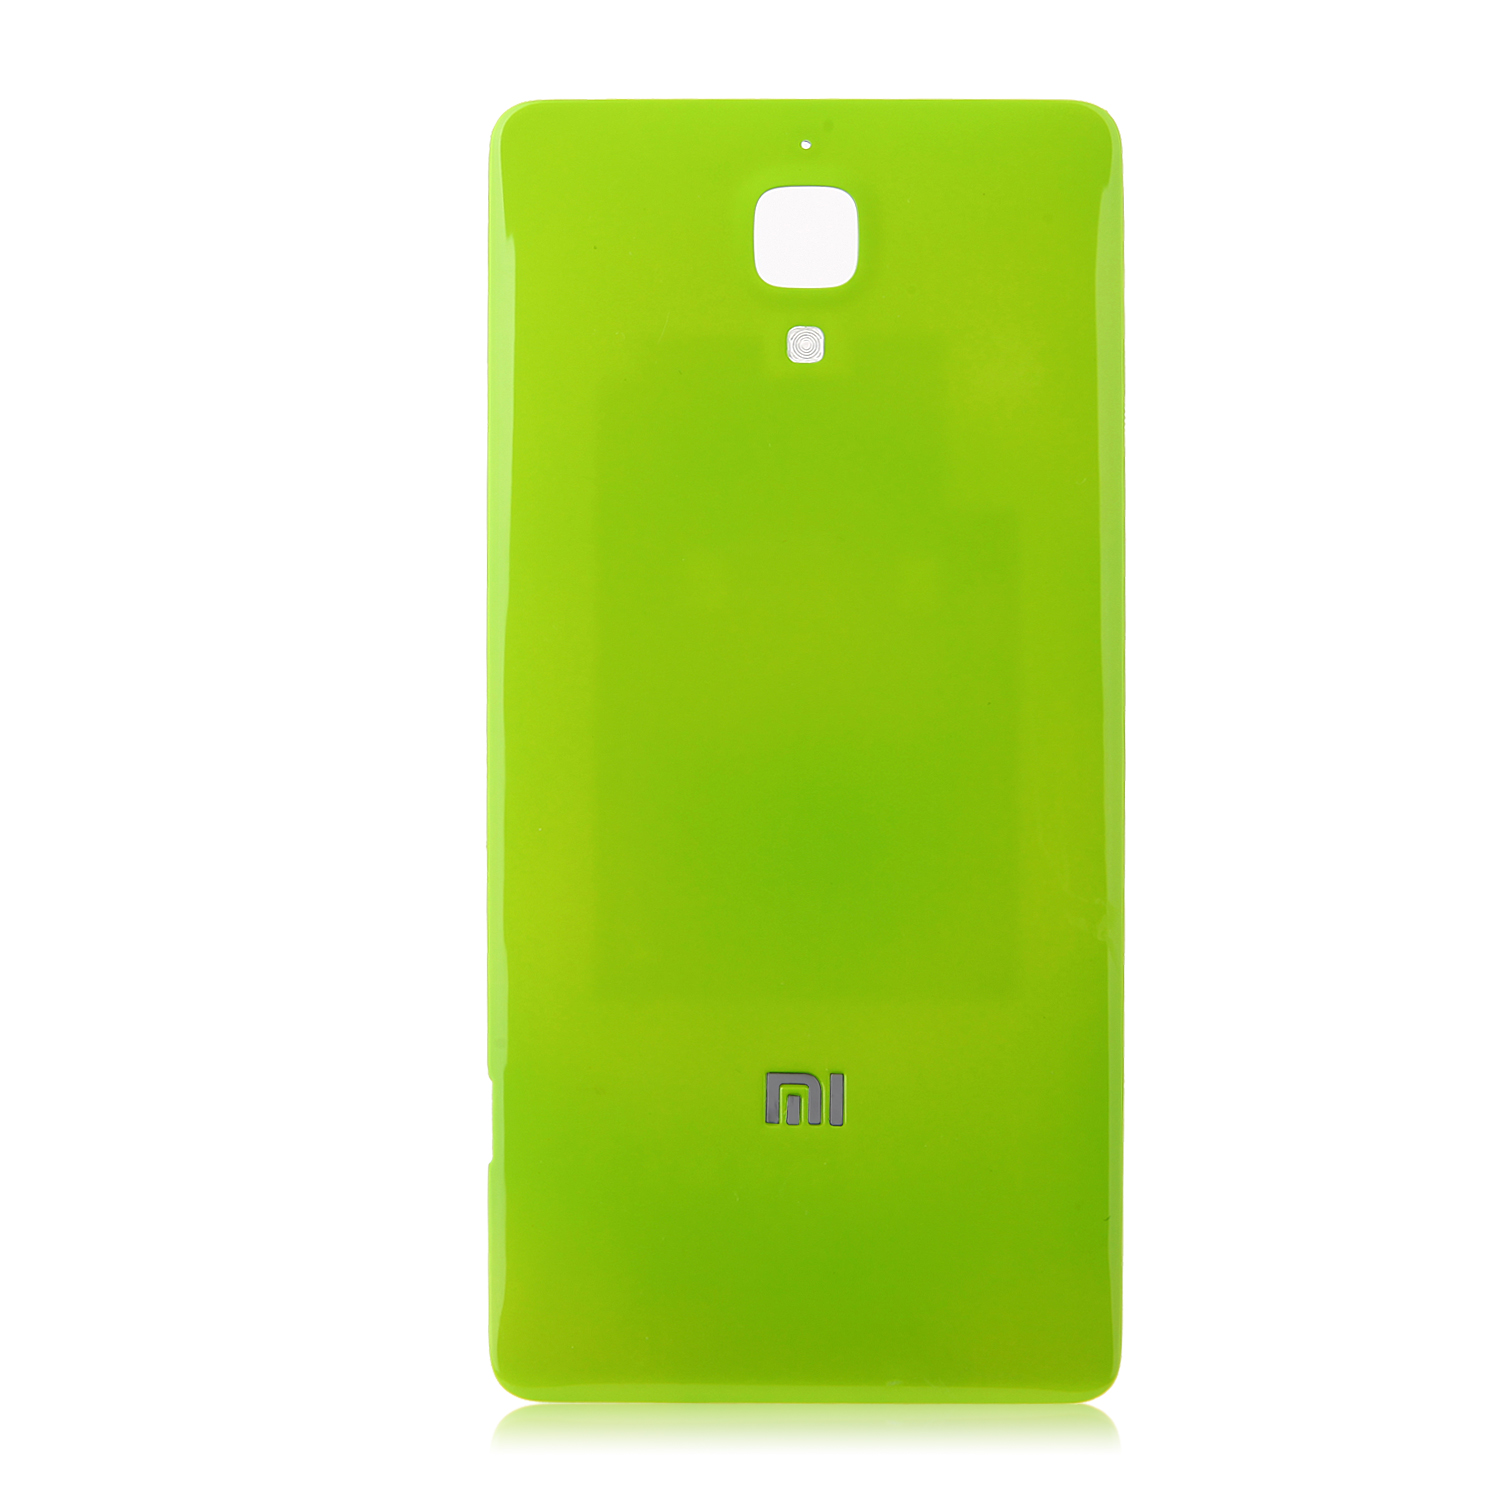 Replacement Battery Cover Back Case for XIAOMI MI4 Smartphone Green